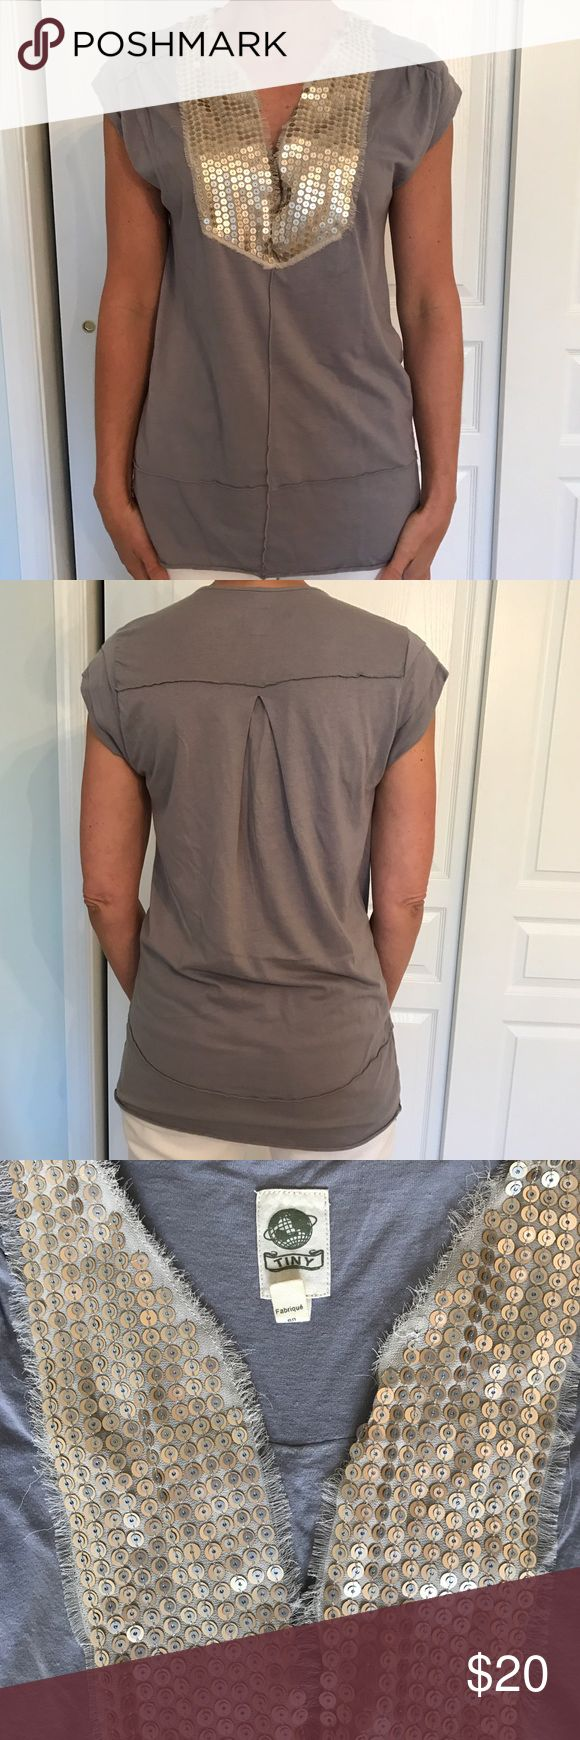 Anthropologie embellished tunic This distinct embellished tunic is a standout. It is a tunic style or longer tee. It is sized small. It is fairly well worn. The color has faded a bit and the one shoulder has a minor tear ( picture included ) Anthropologie Tops Tees - Short Sleeve